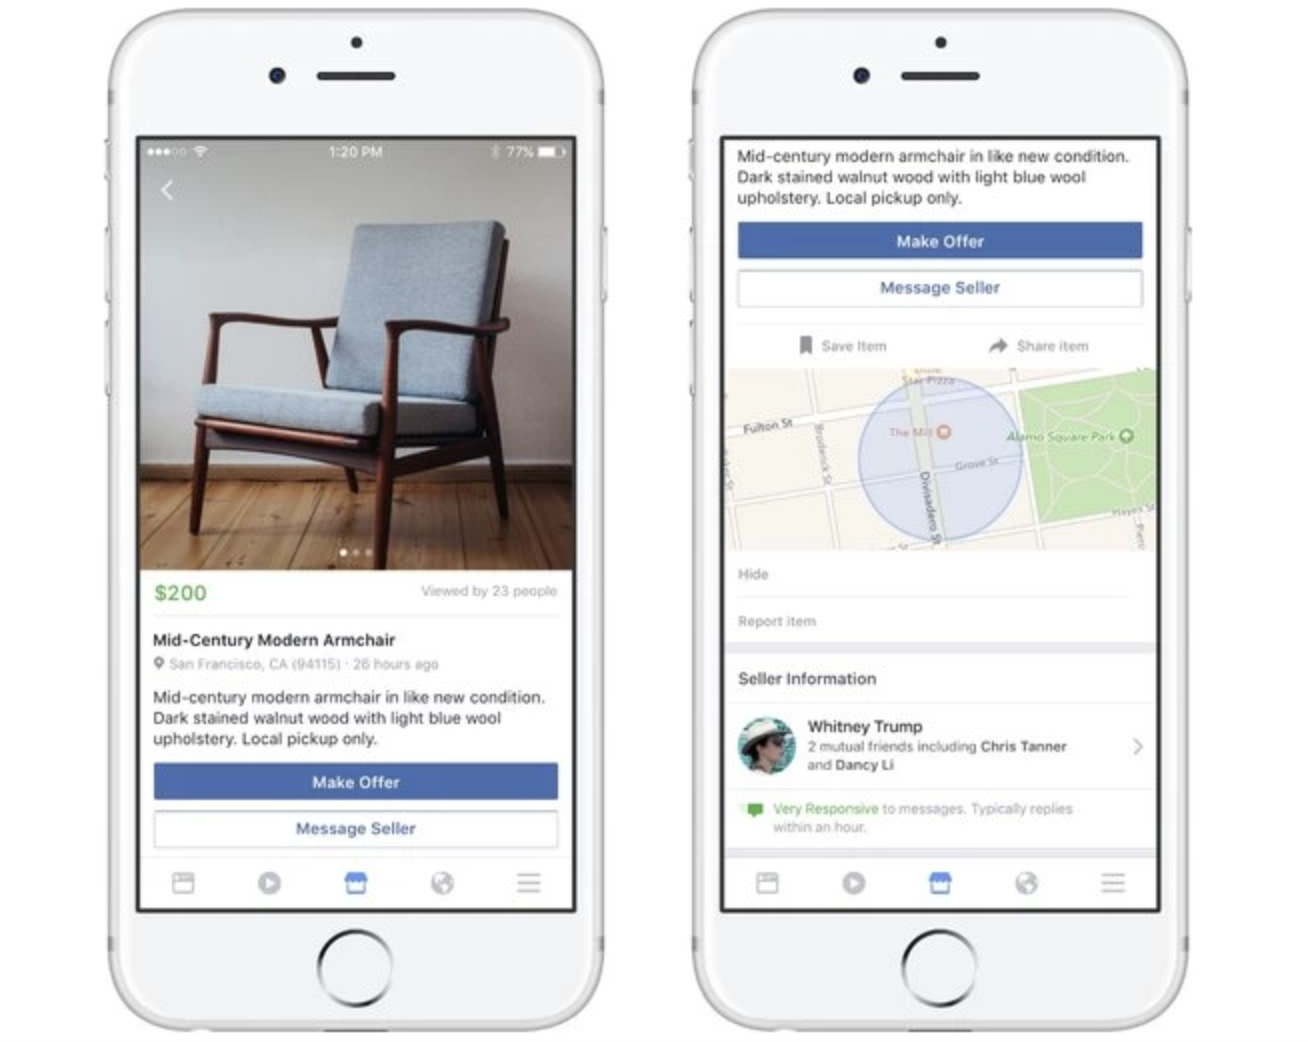 Creating A Listing On Facebook Marketplace